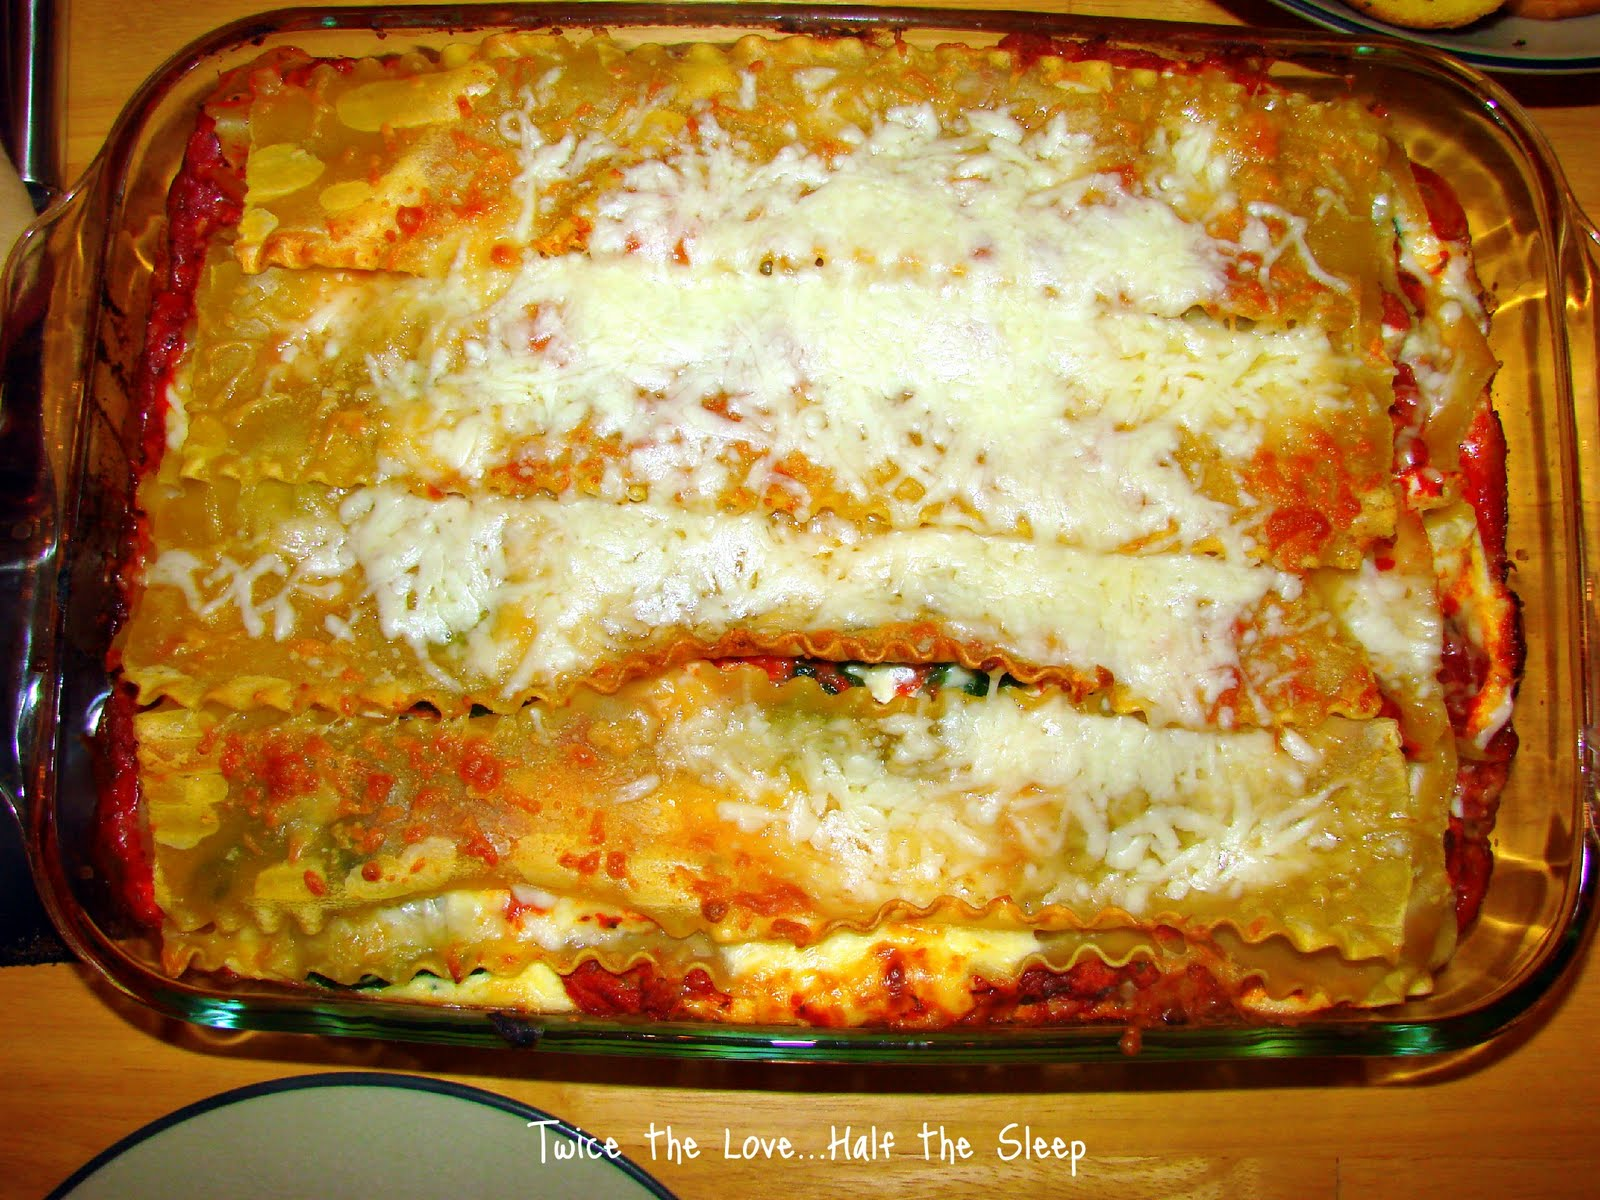 White House Recipe: Turkey Lasagna with Spinach